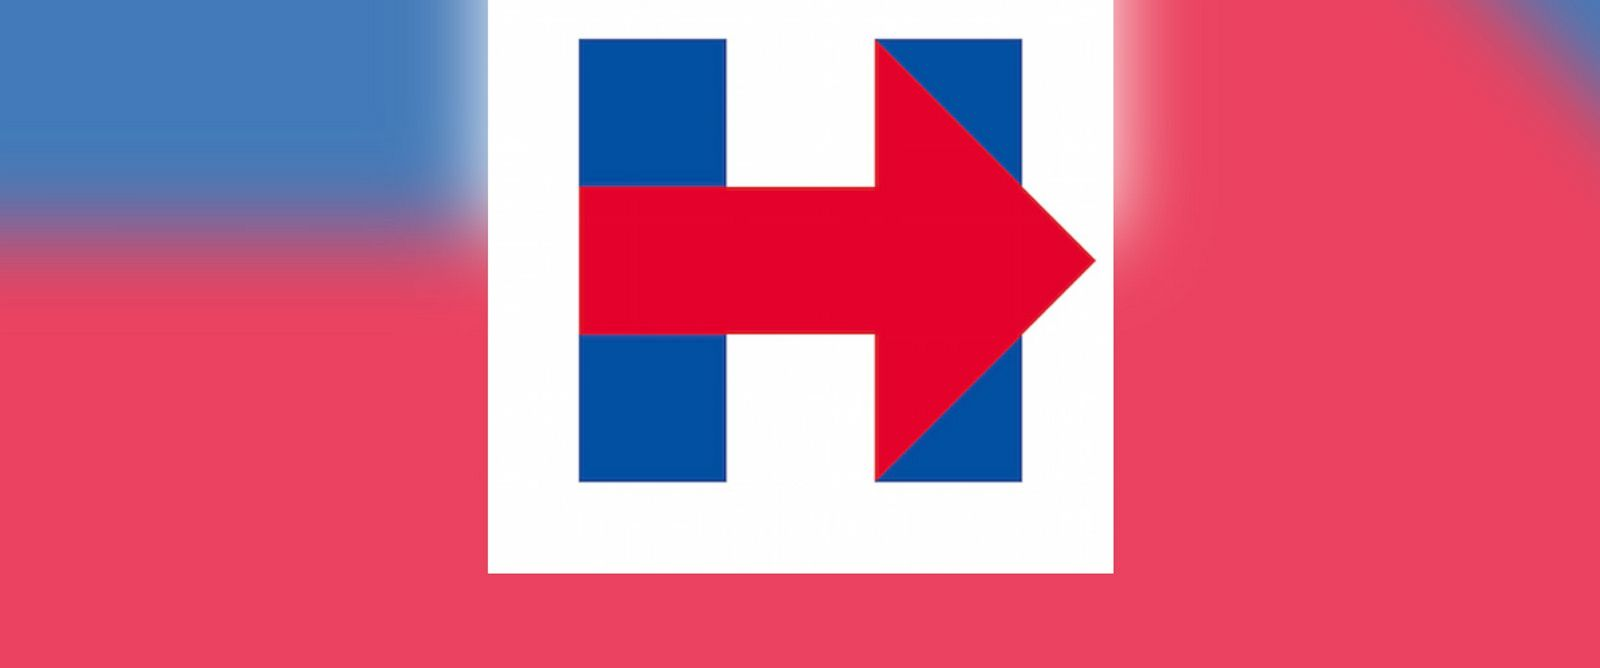 PHOTO: Hillary Clintons campaign logo is pictured.